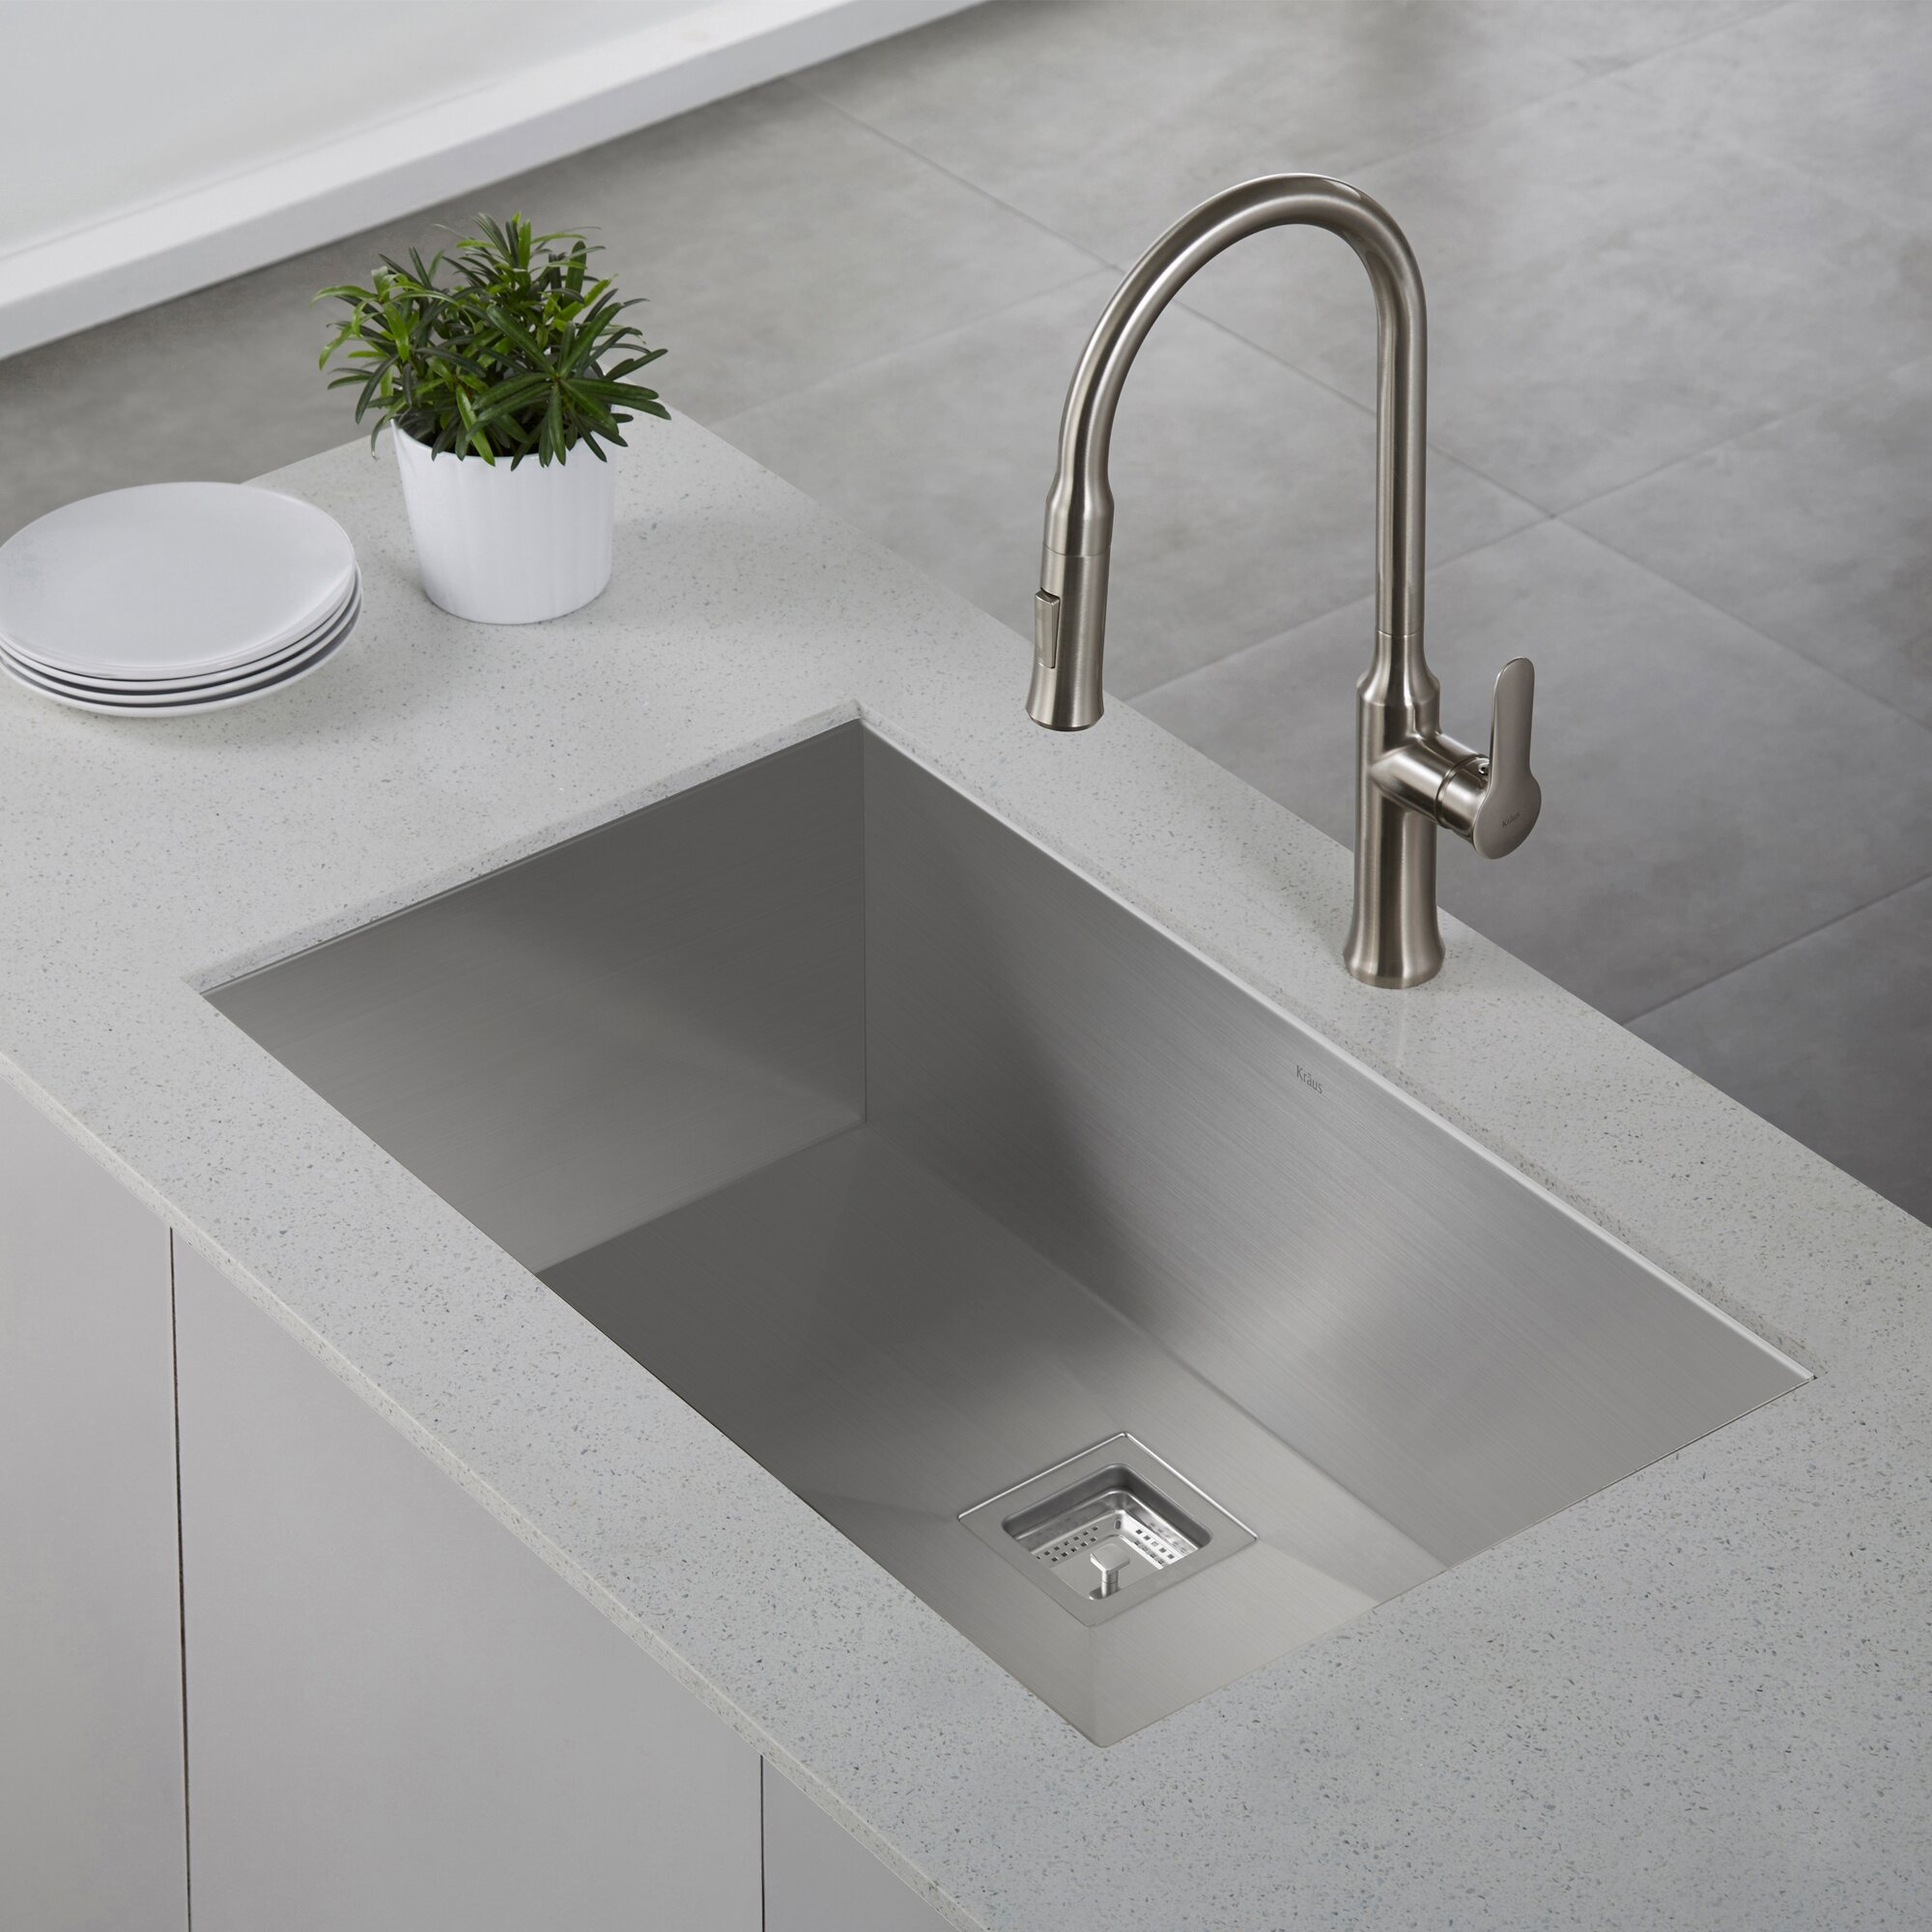 16 Undermount Sink : ... 16 Gauge Handmade Undermount Single Bowl Stainless Steel Kitchen Sink